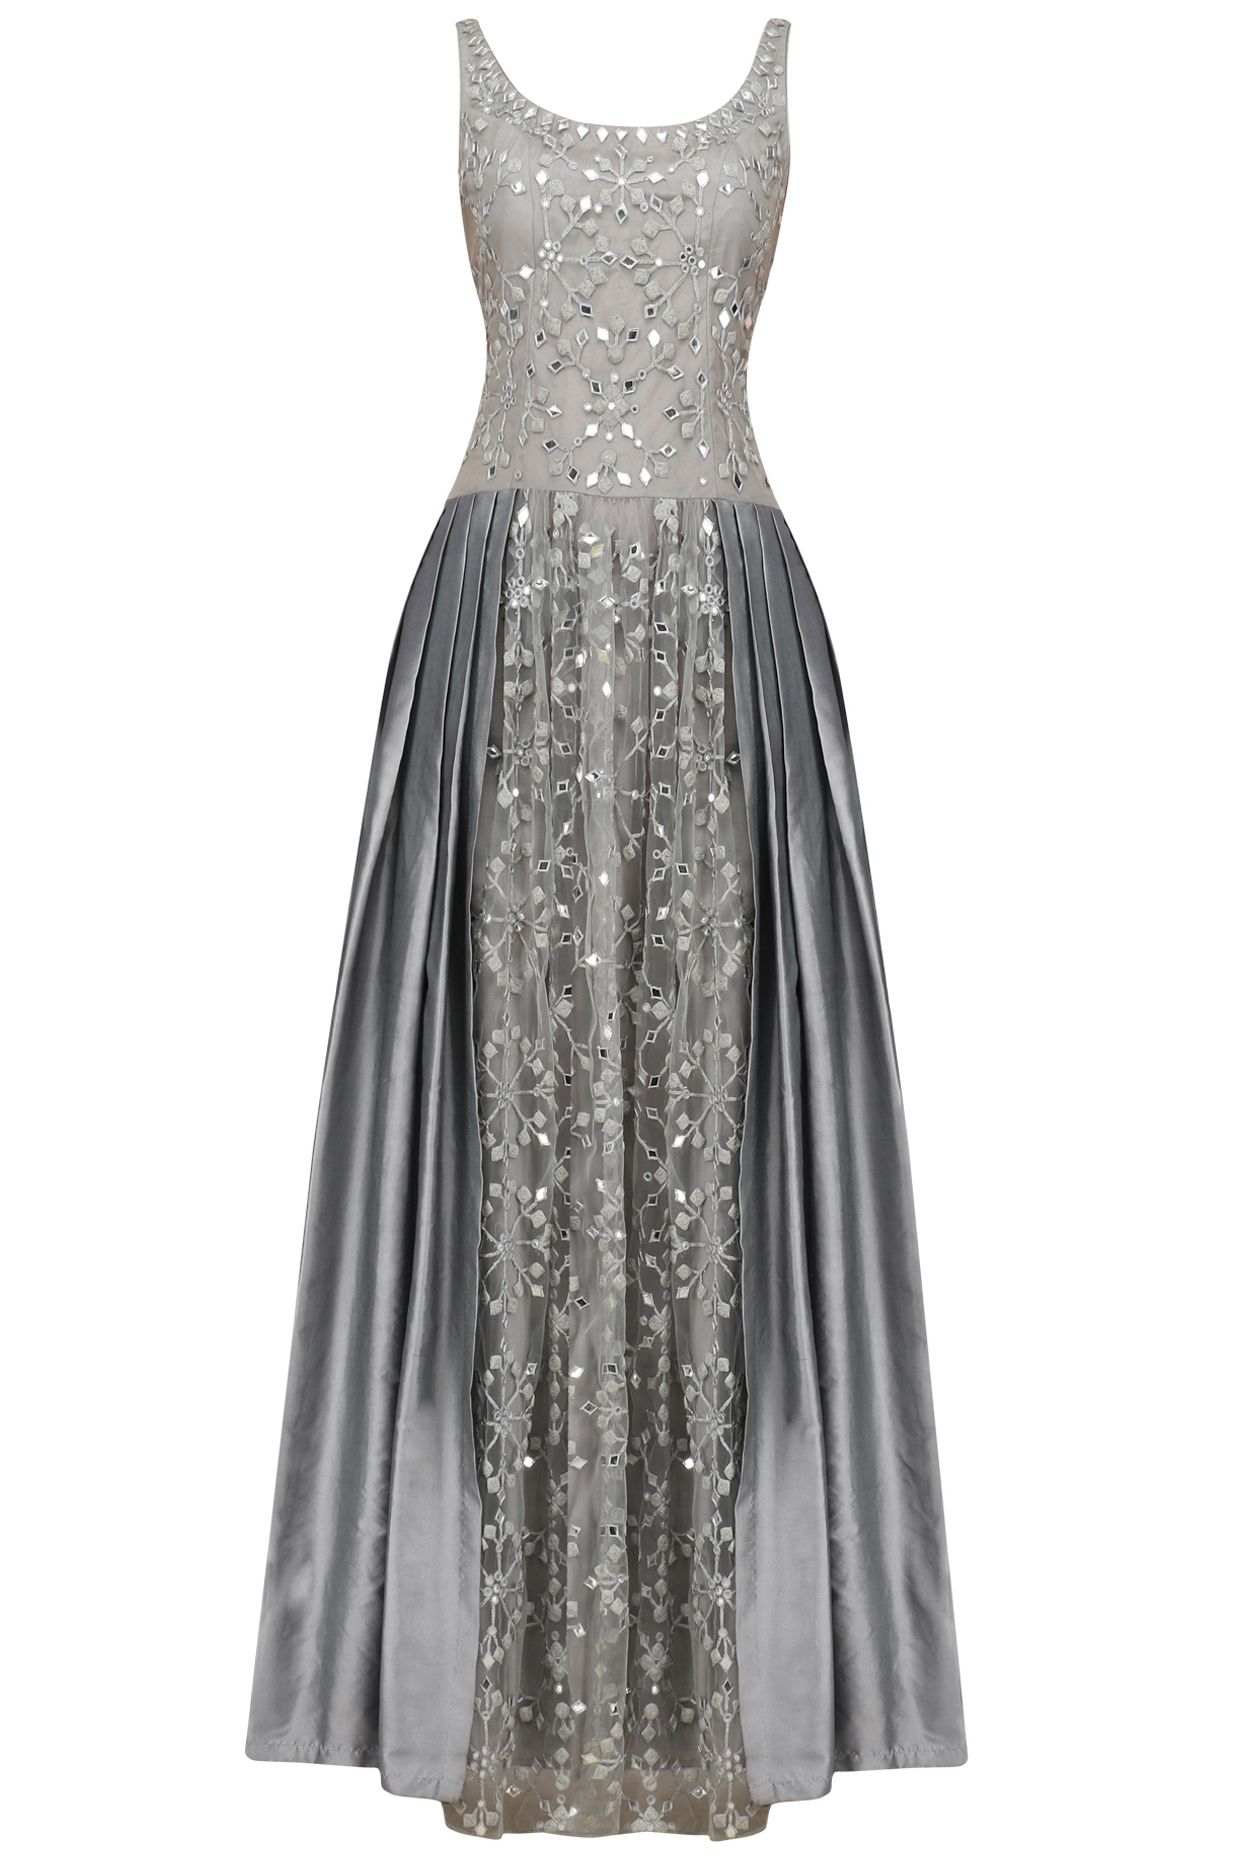 Grey mirror and dori embroidered gown